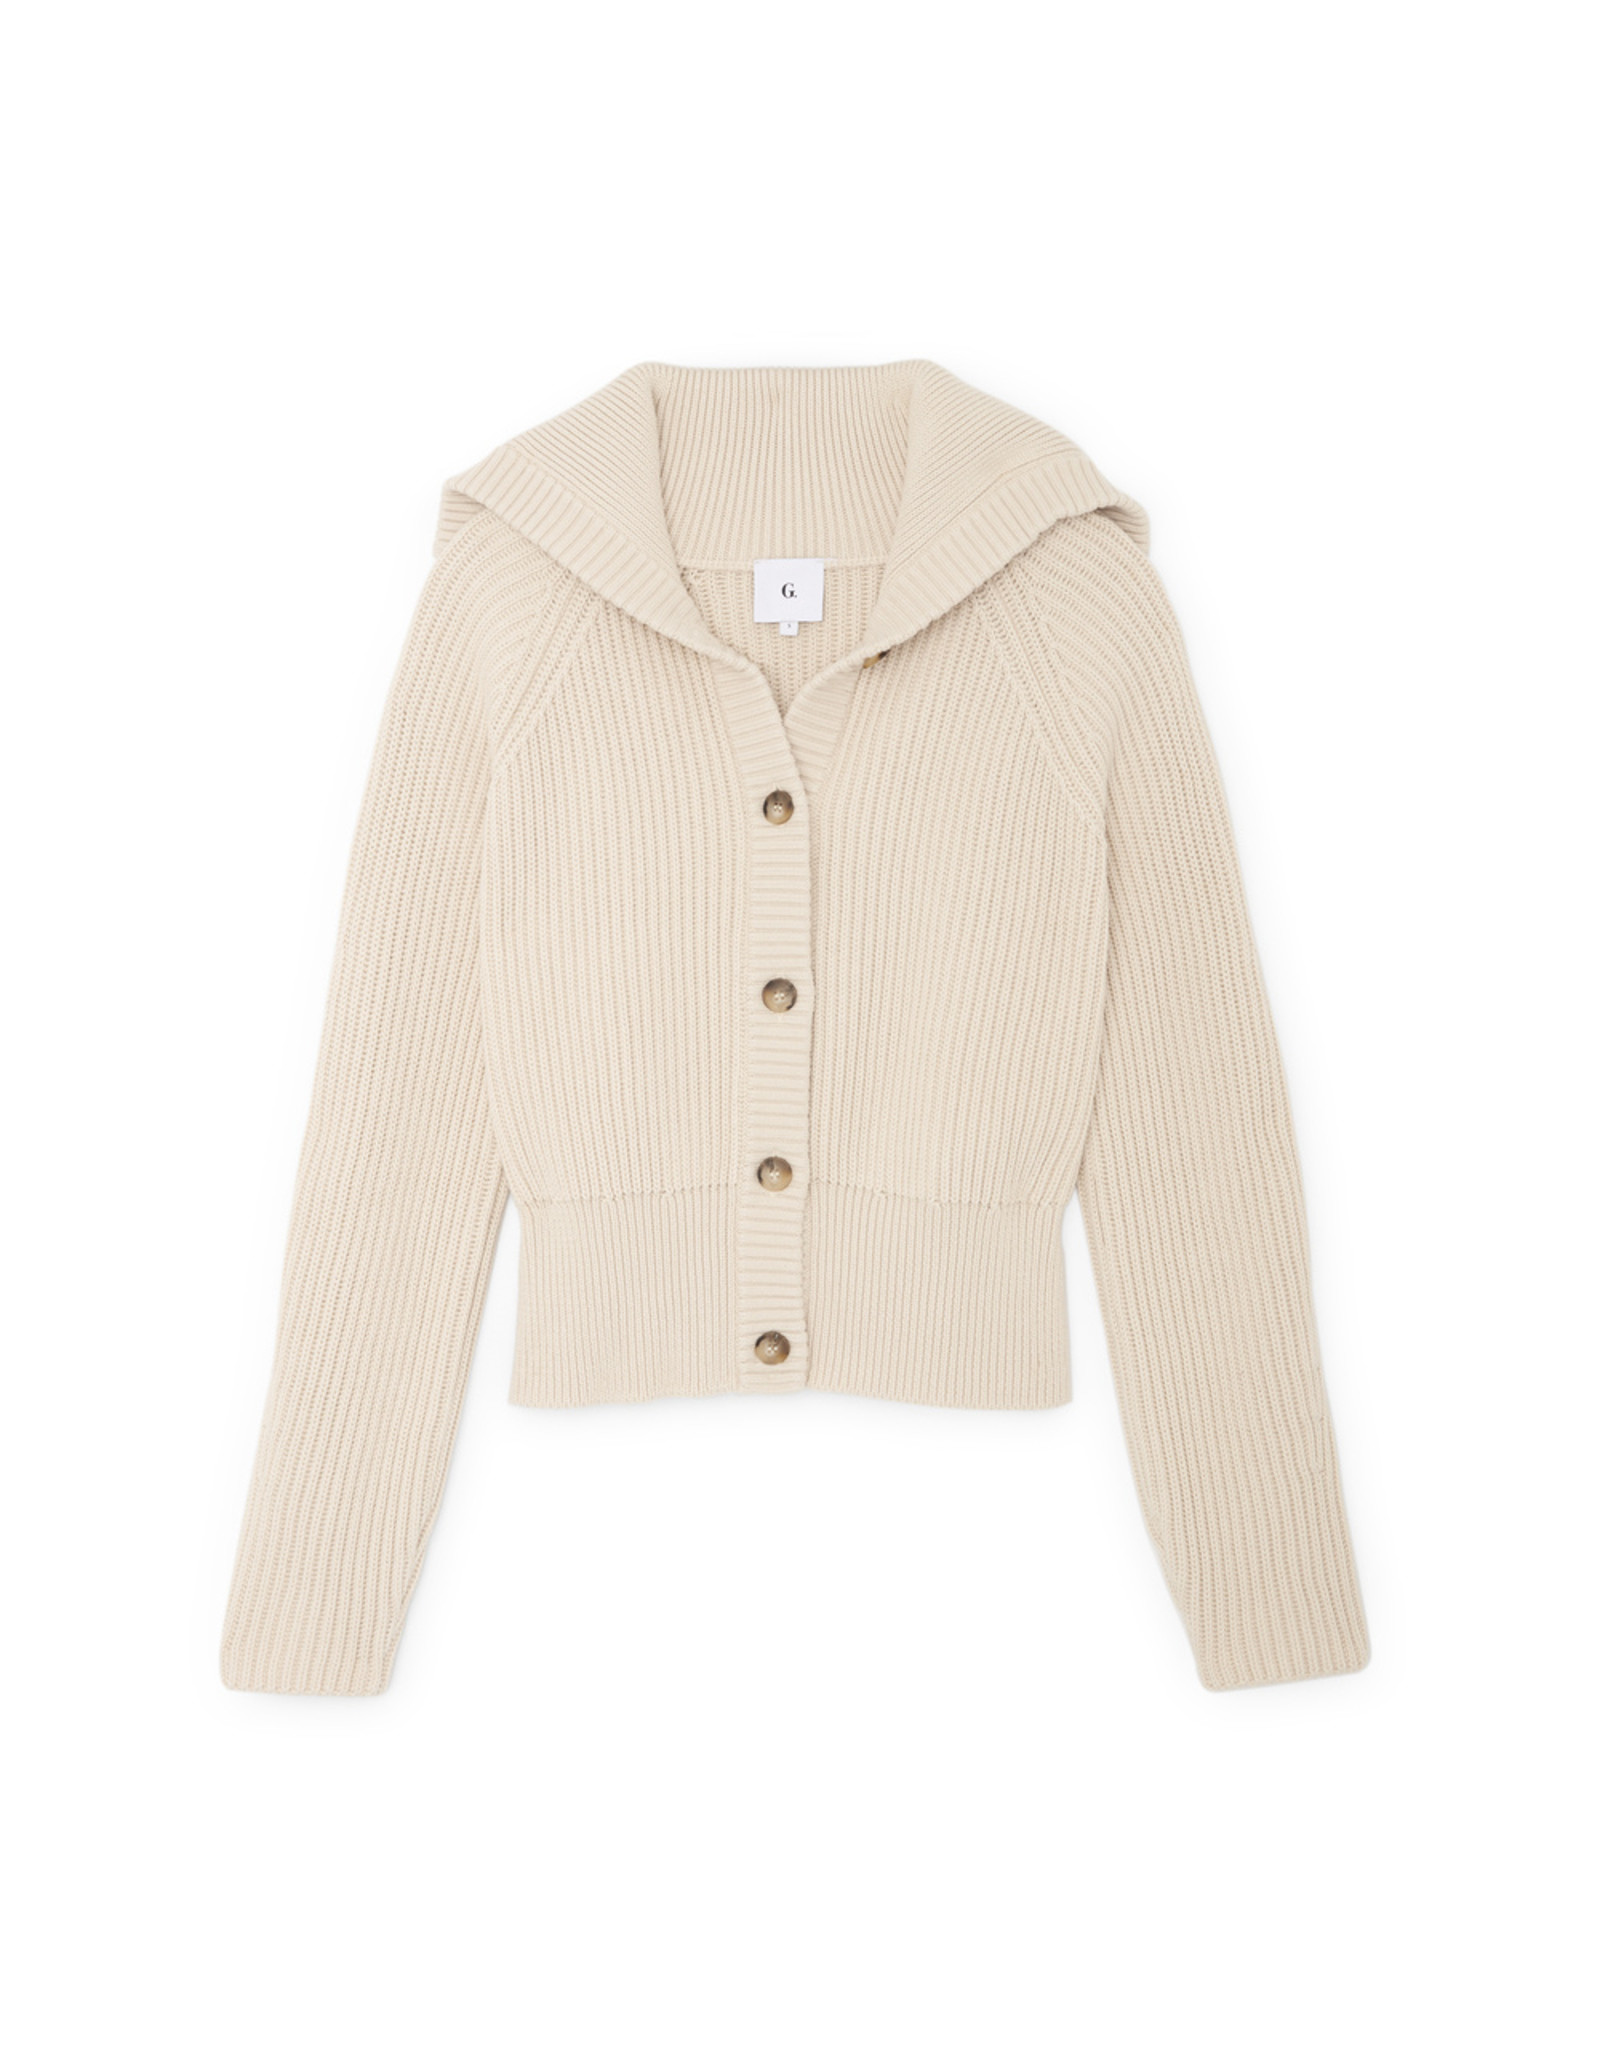 G. Label Bella Button Bomber Cardigan (Color: Ivory, Size: M)